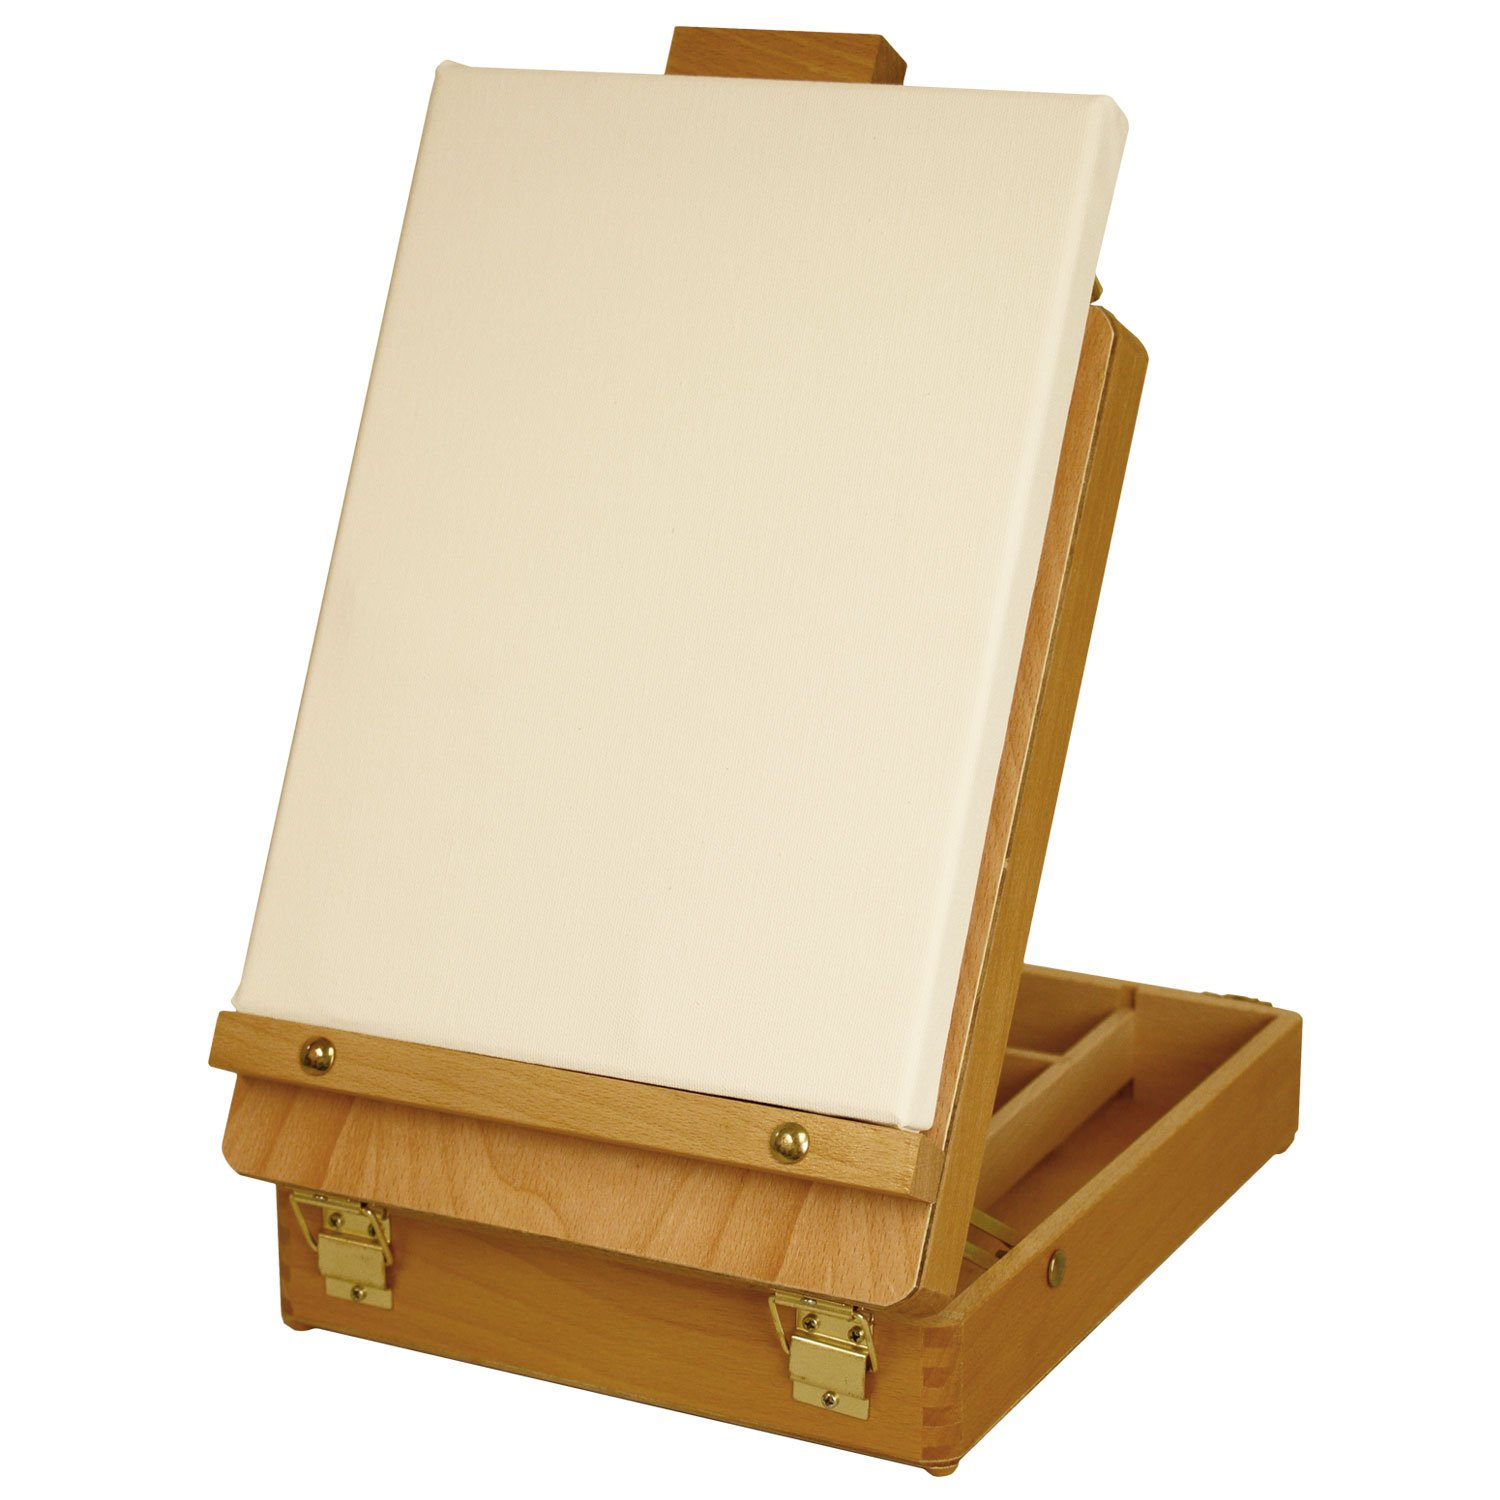 Amazon.com: US Art Supply Newport Small Adjustable Wood Table Sketchbox  Easel   Desktop Artist Easel   Wooden Portable Compact Stand   Student  Drawing ...